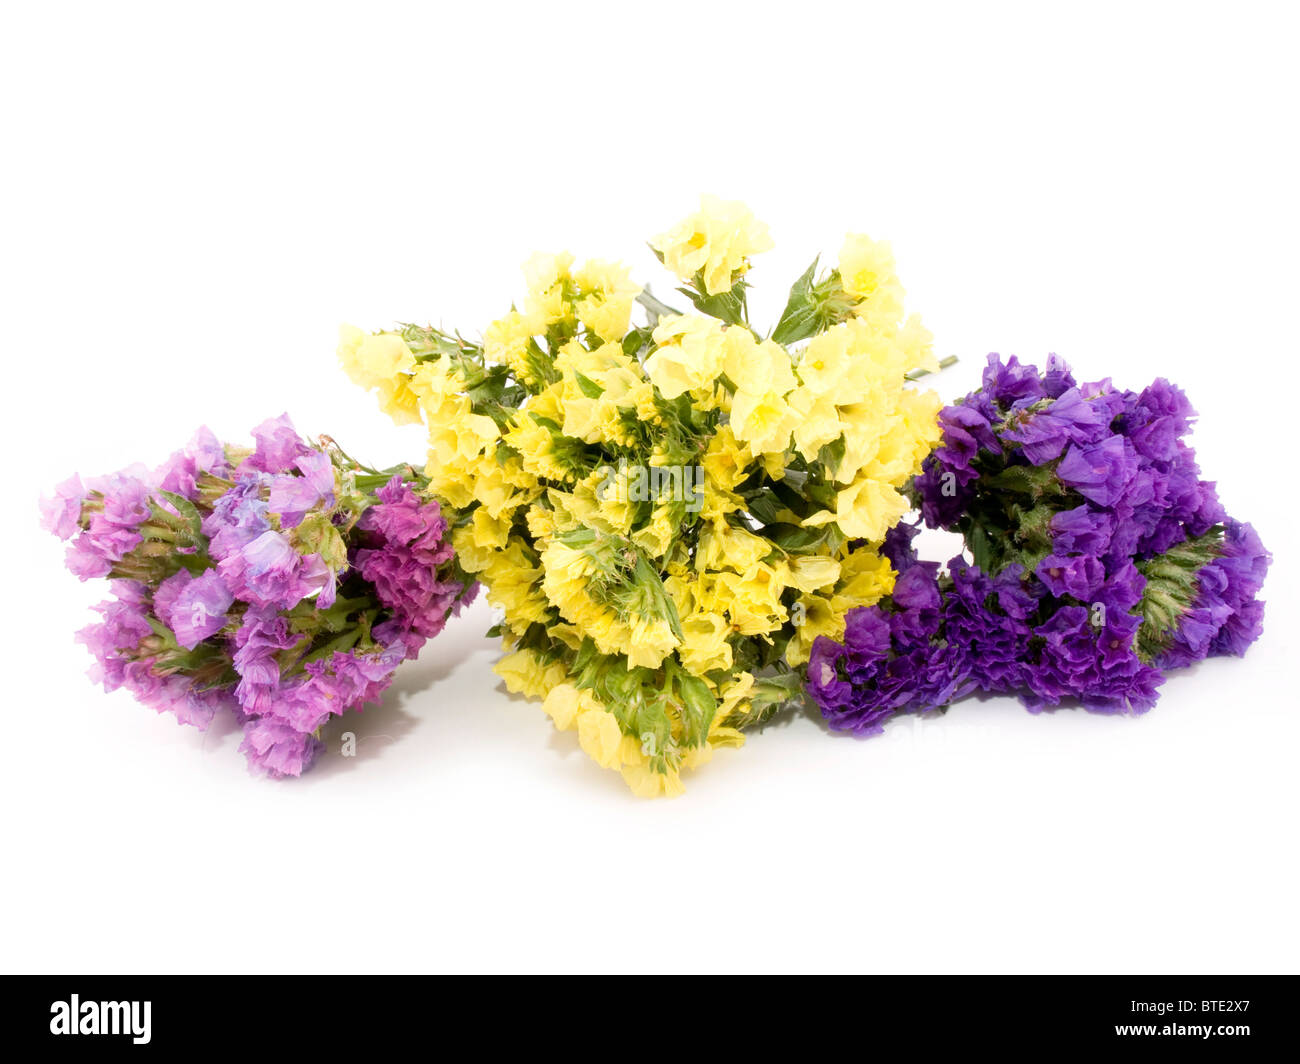 Bouquet of beautiful statice flowers on white background. - Stock Image